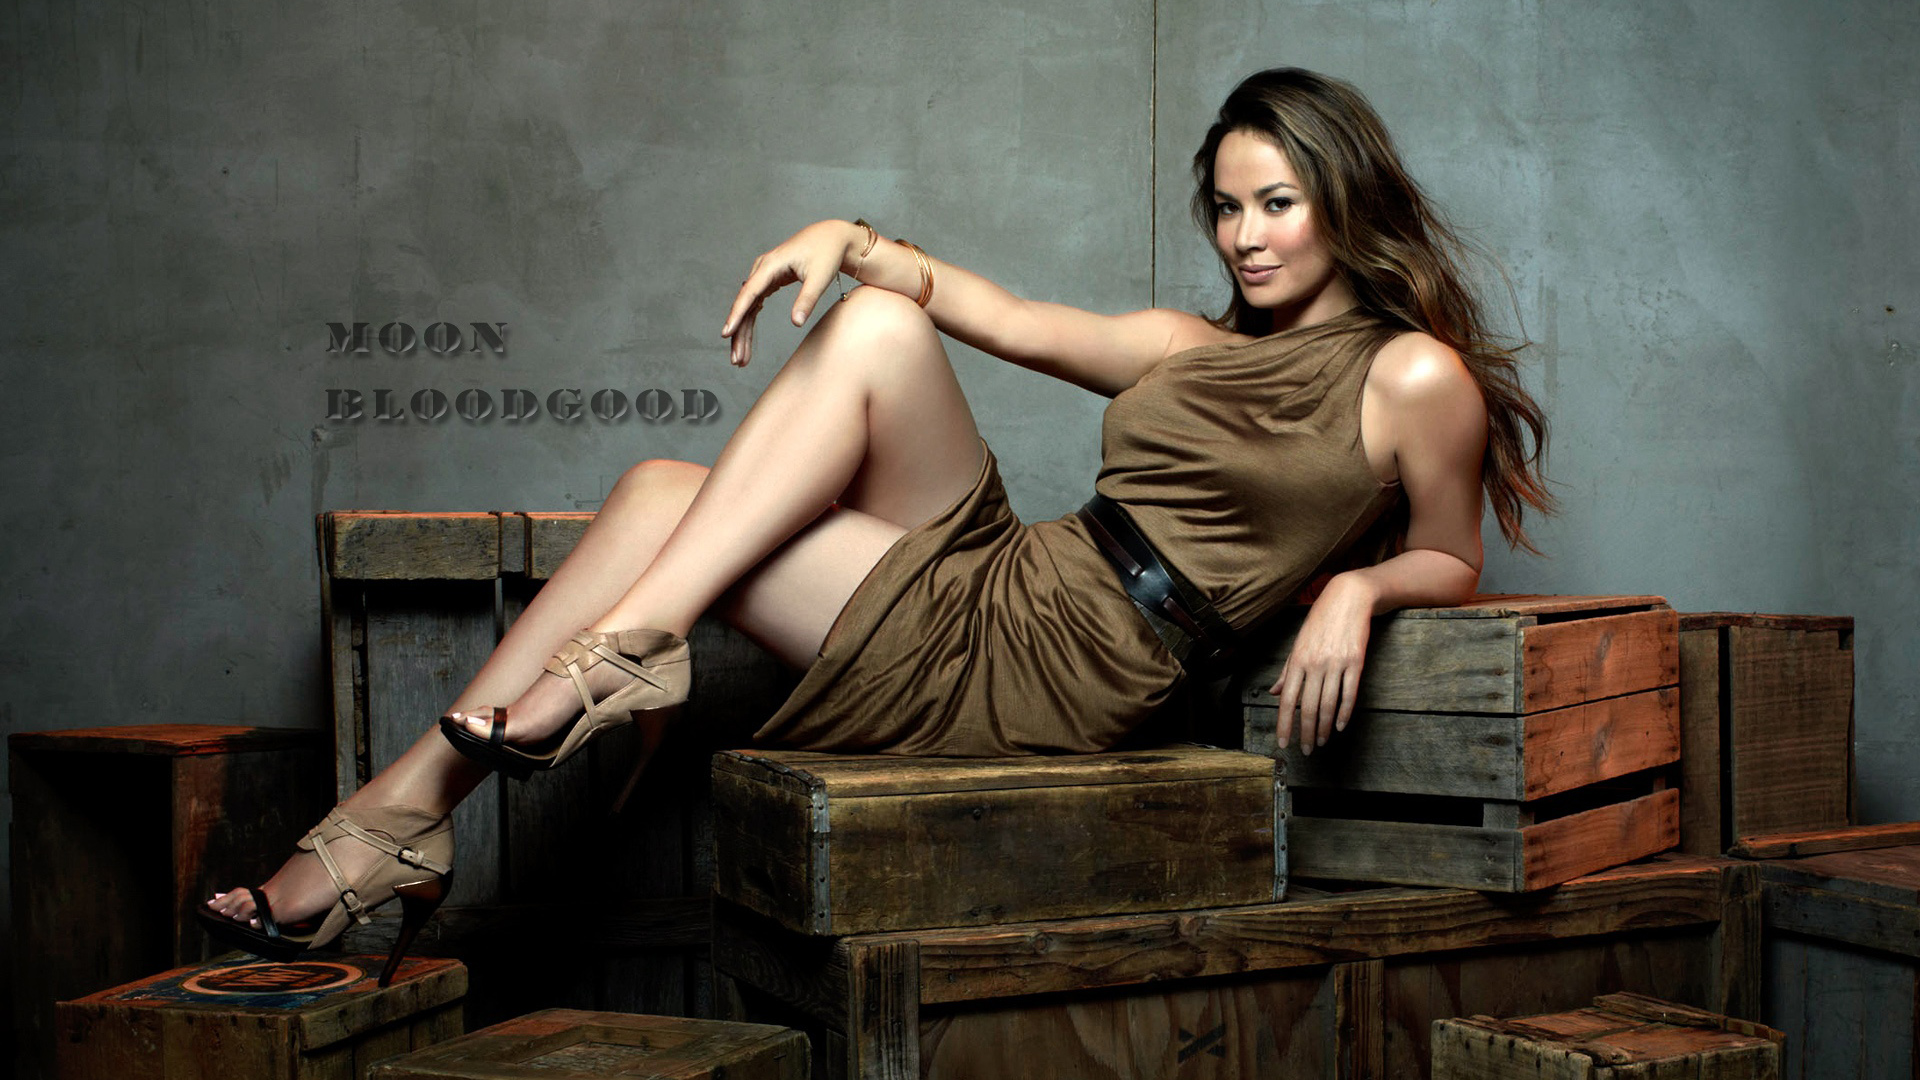 Moon Bloodgood Wallpapers HD Wallpapers 1920x1080